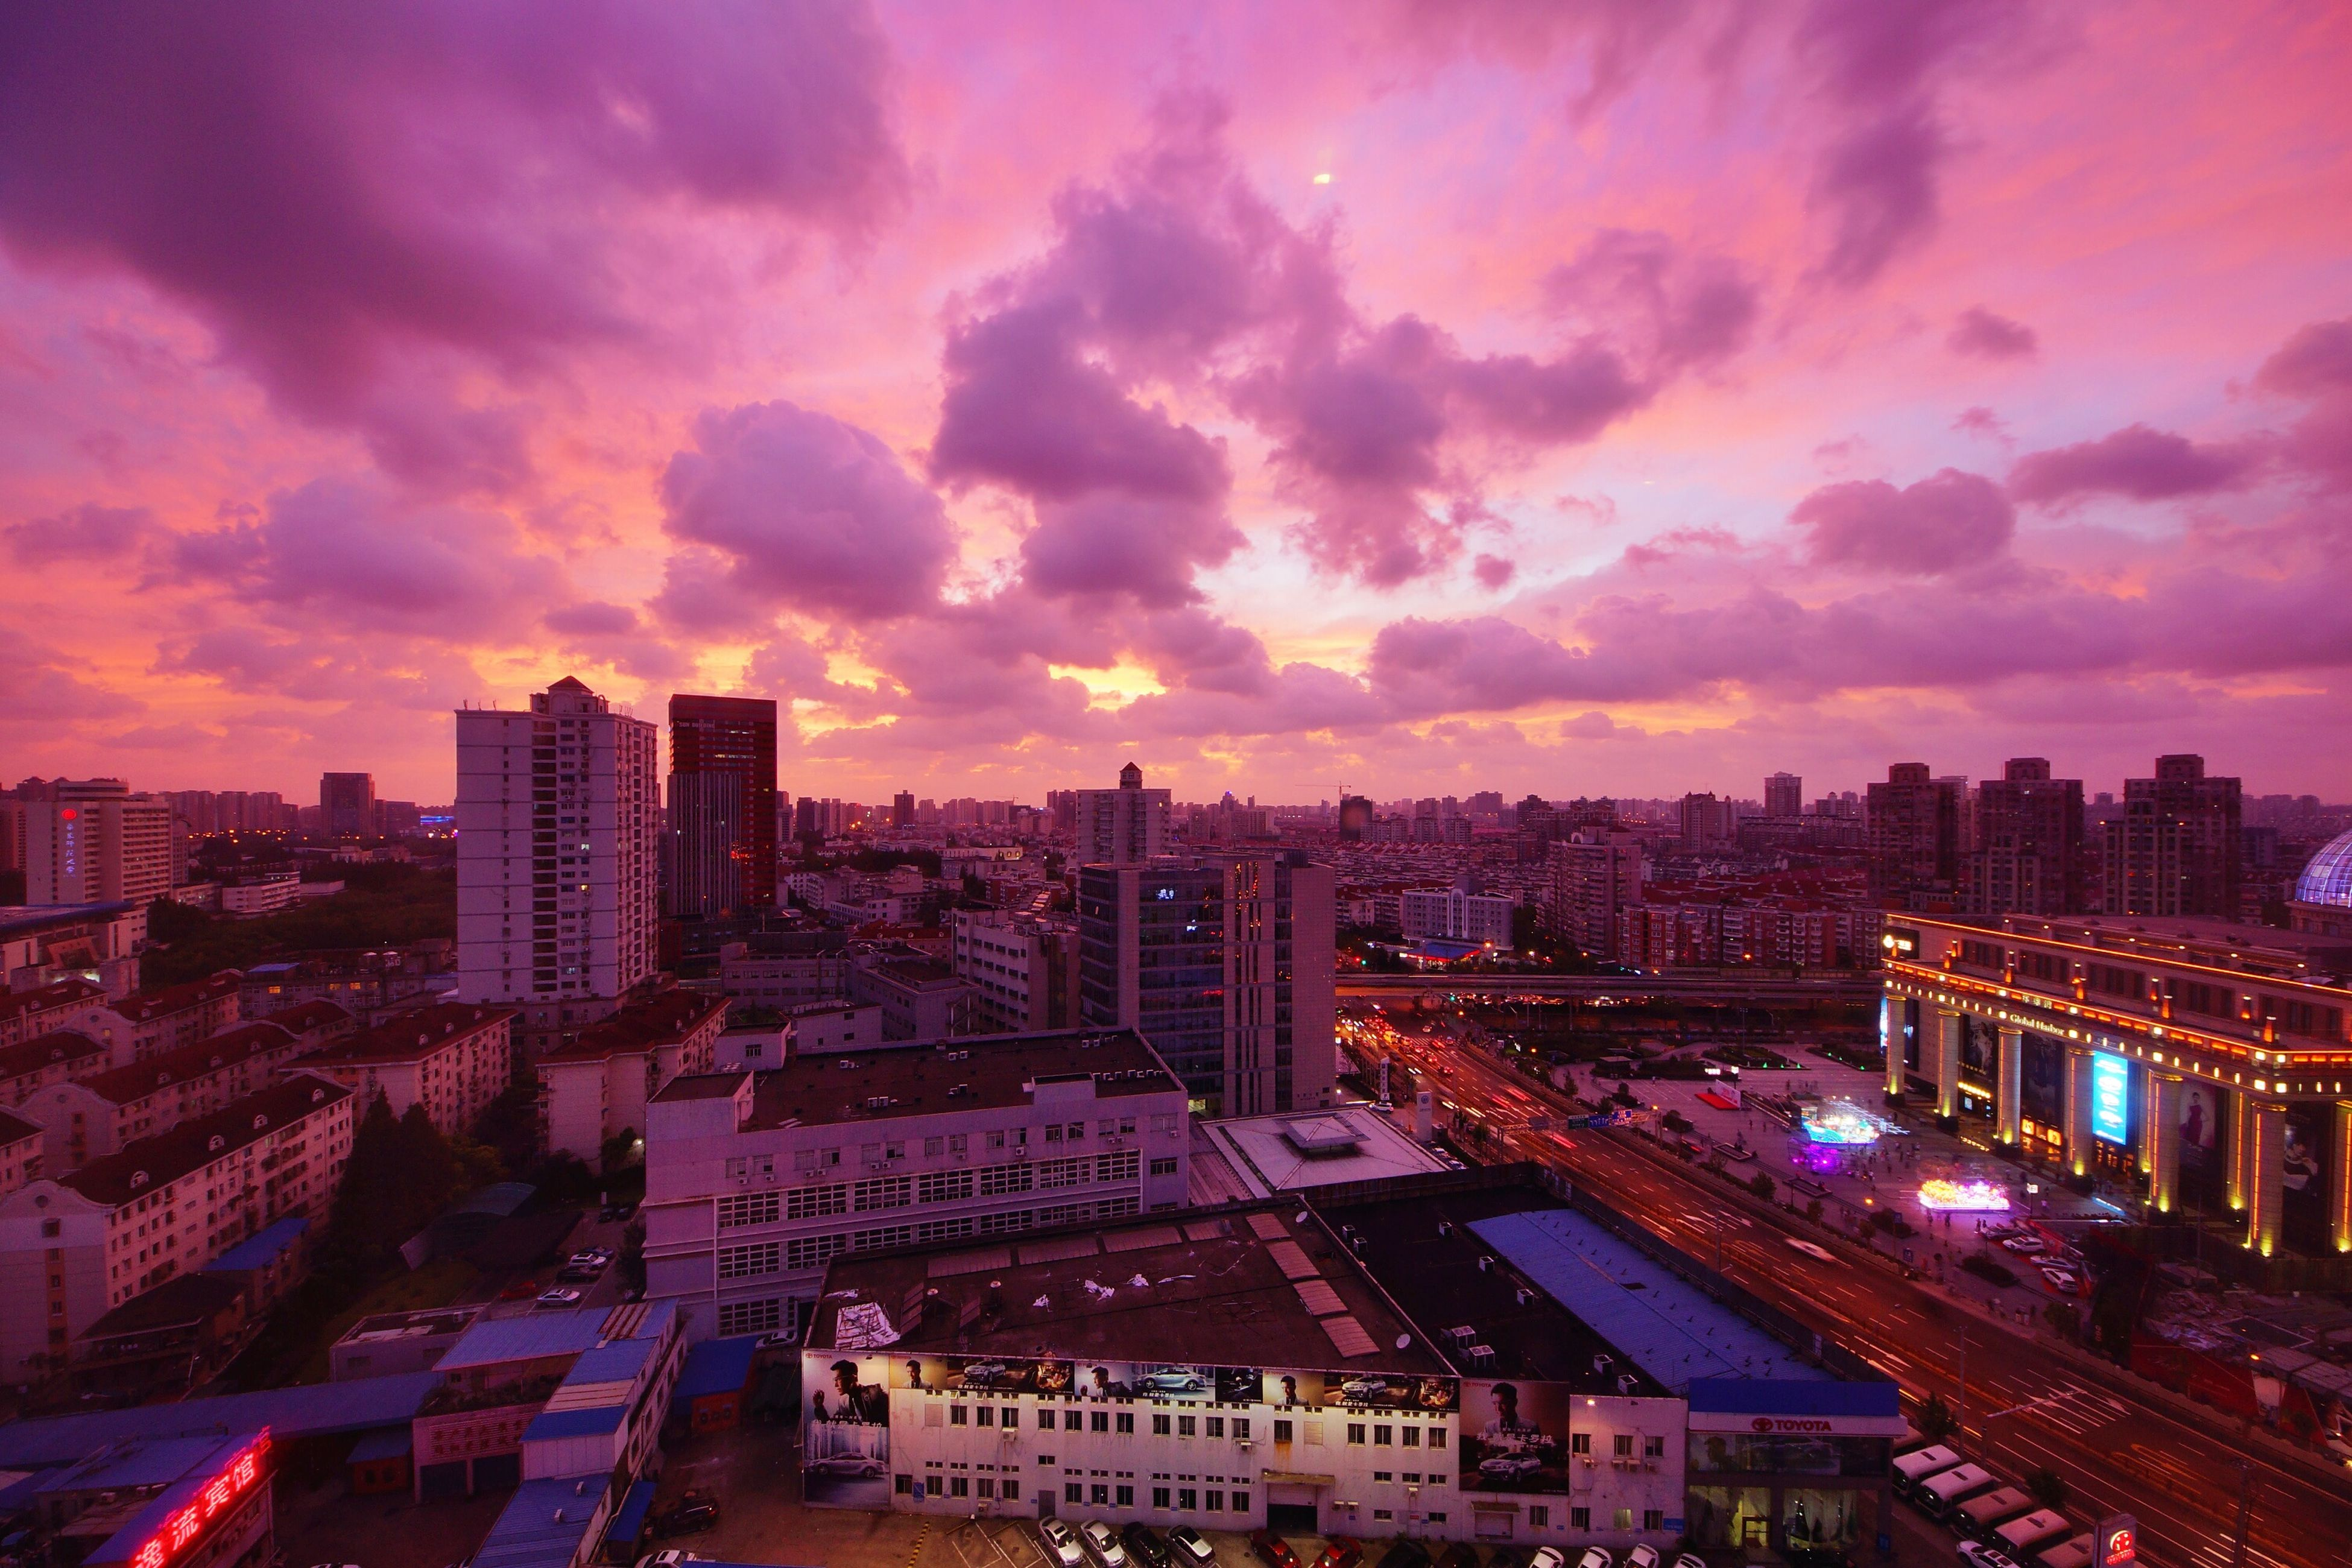 city, building exterior, architecture, built structure, cityscape, sunset, sky, cloud - sky, high angle view, illuminated, city life, dusk, orange color, cloudy, residential building, residential district, car, cloud, skyscraper, road